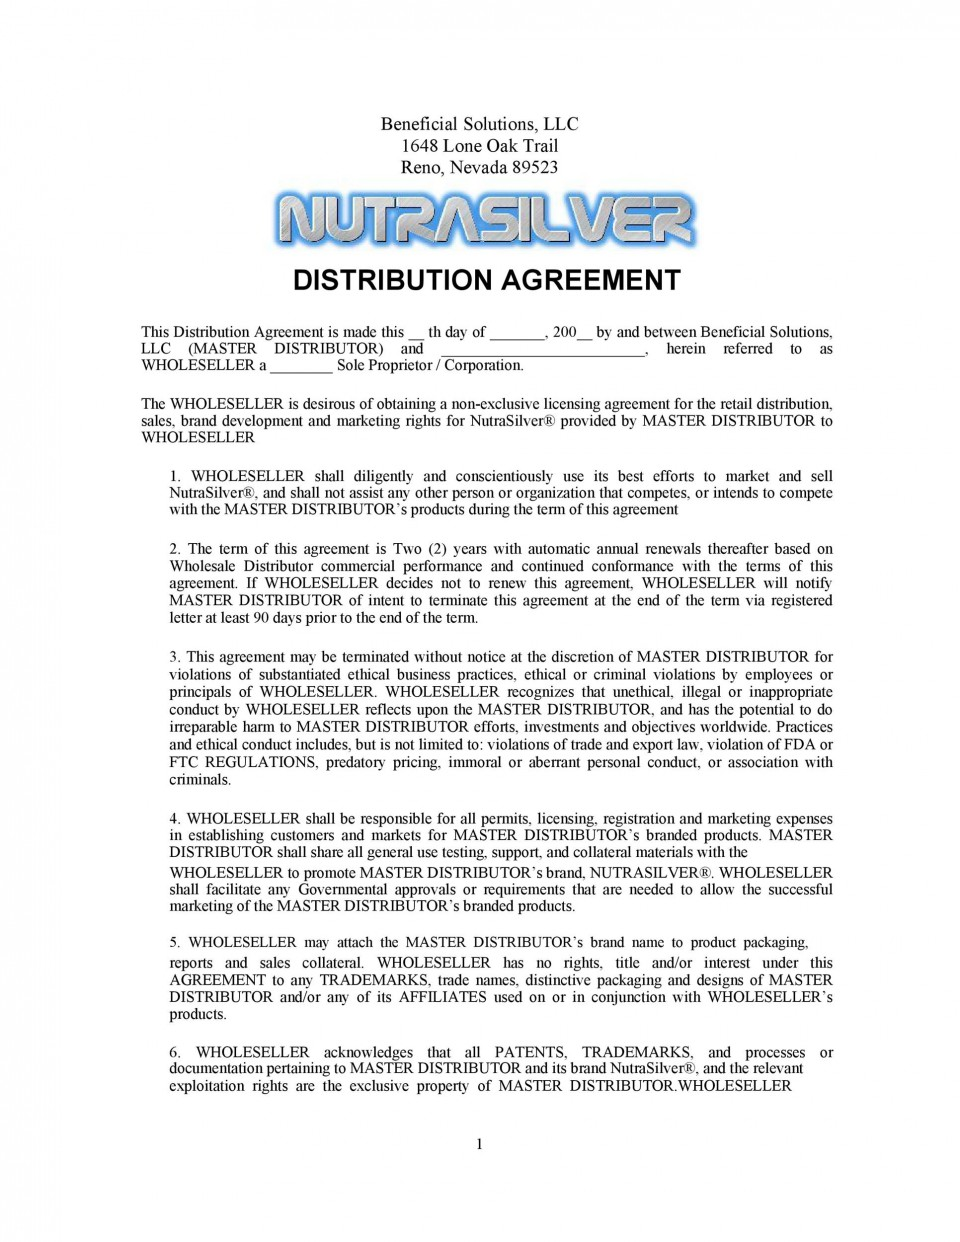 004 Stirring Exclusive Distribution Contract Template Concept  Agreement Australia Uk Non Free960